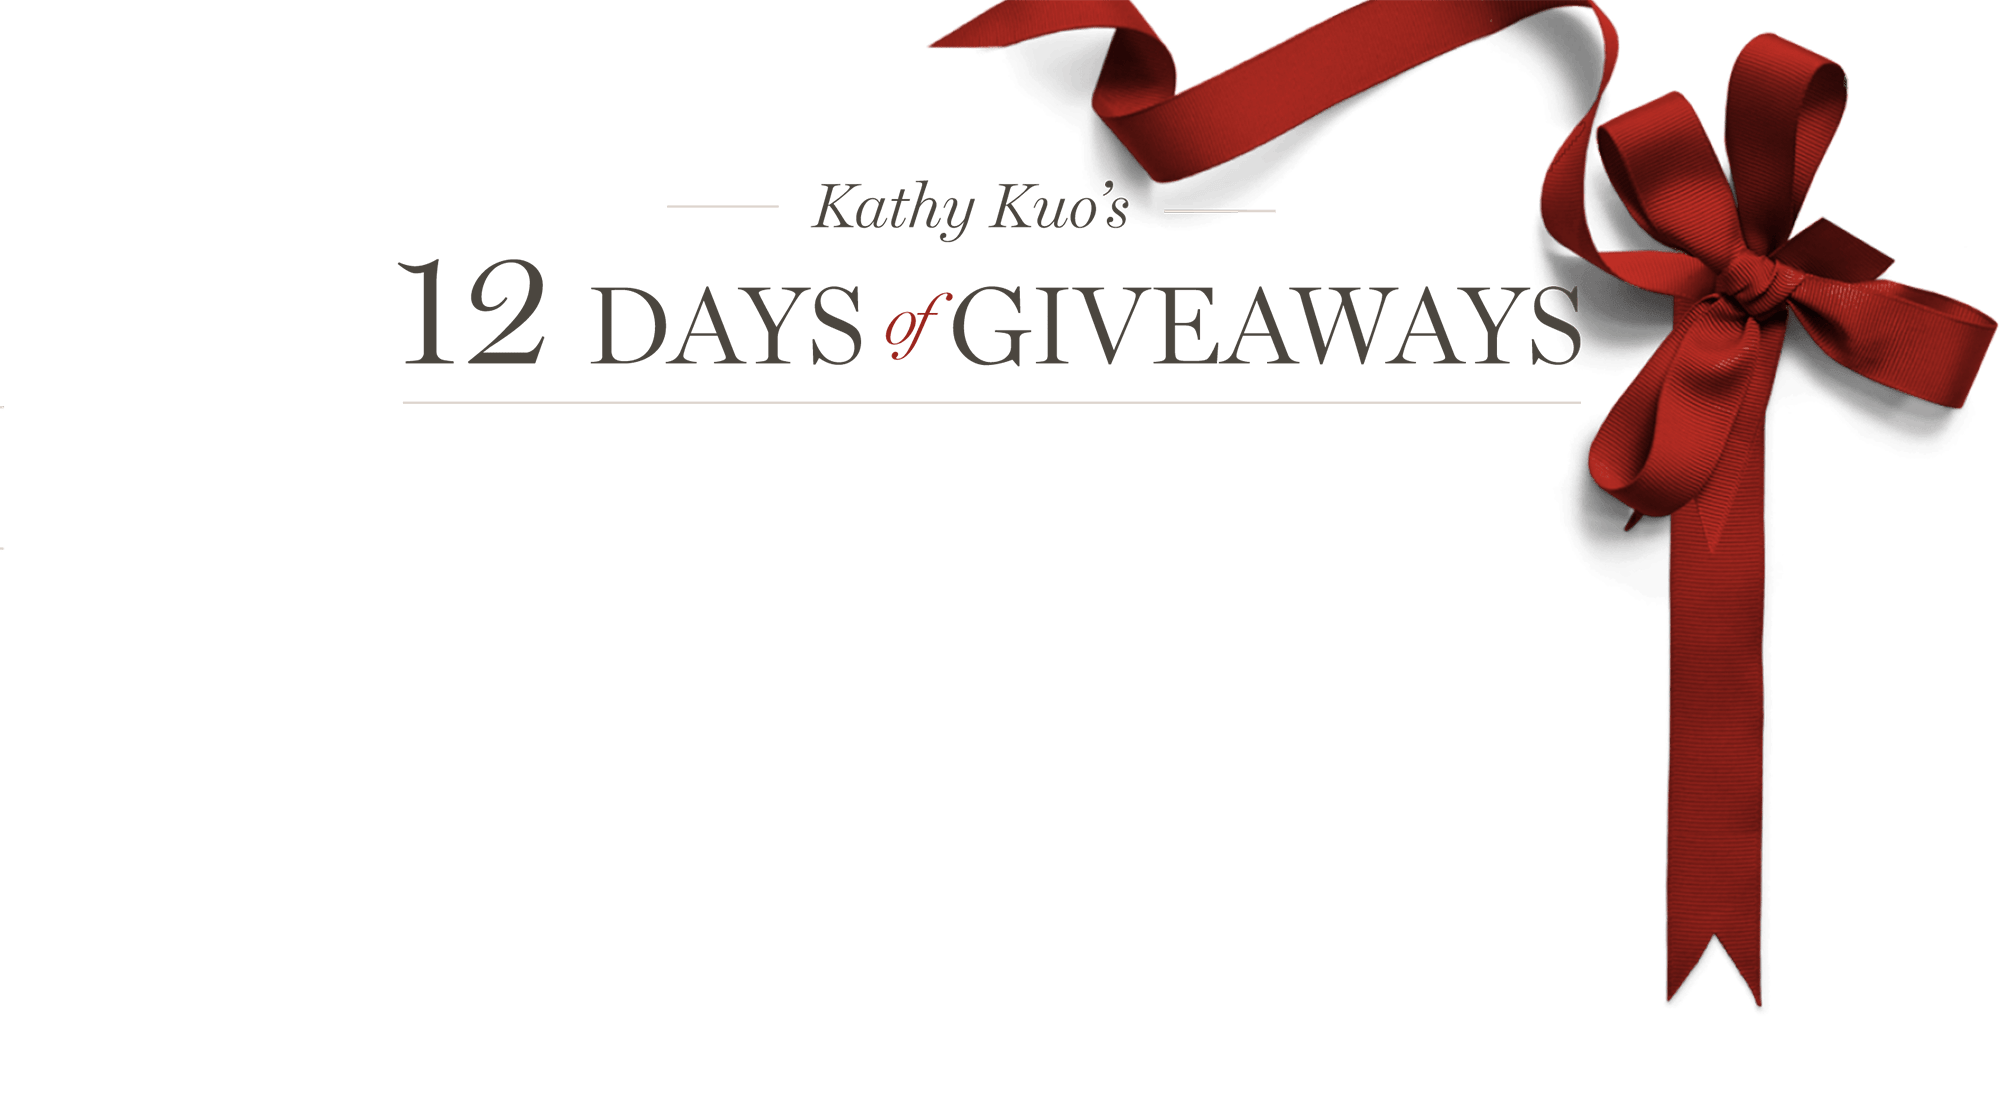 12 Days of Giveaway